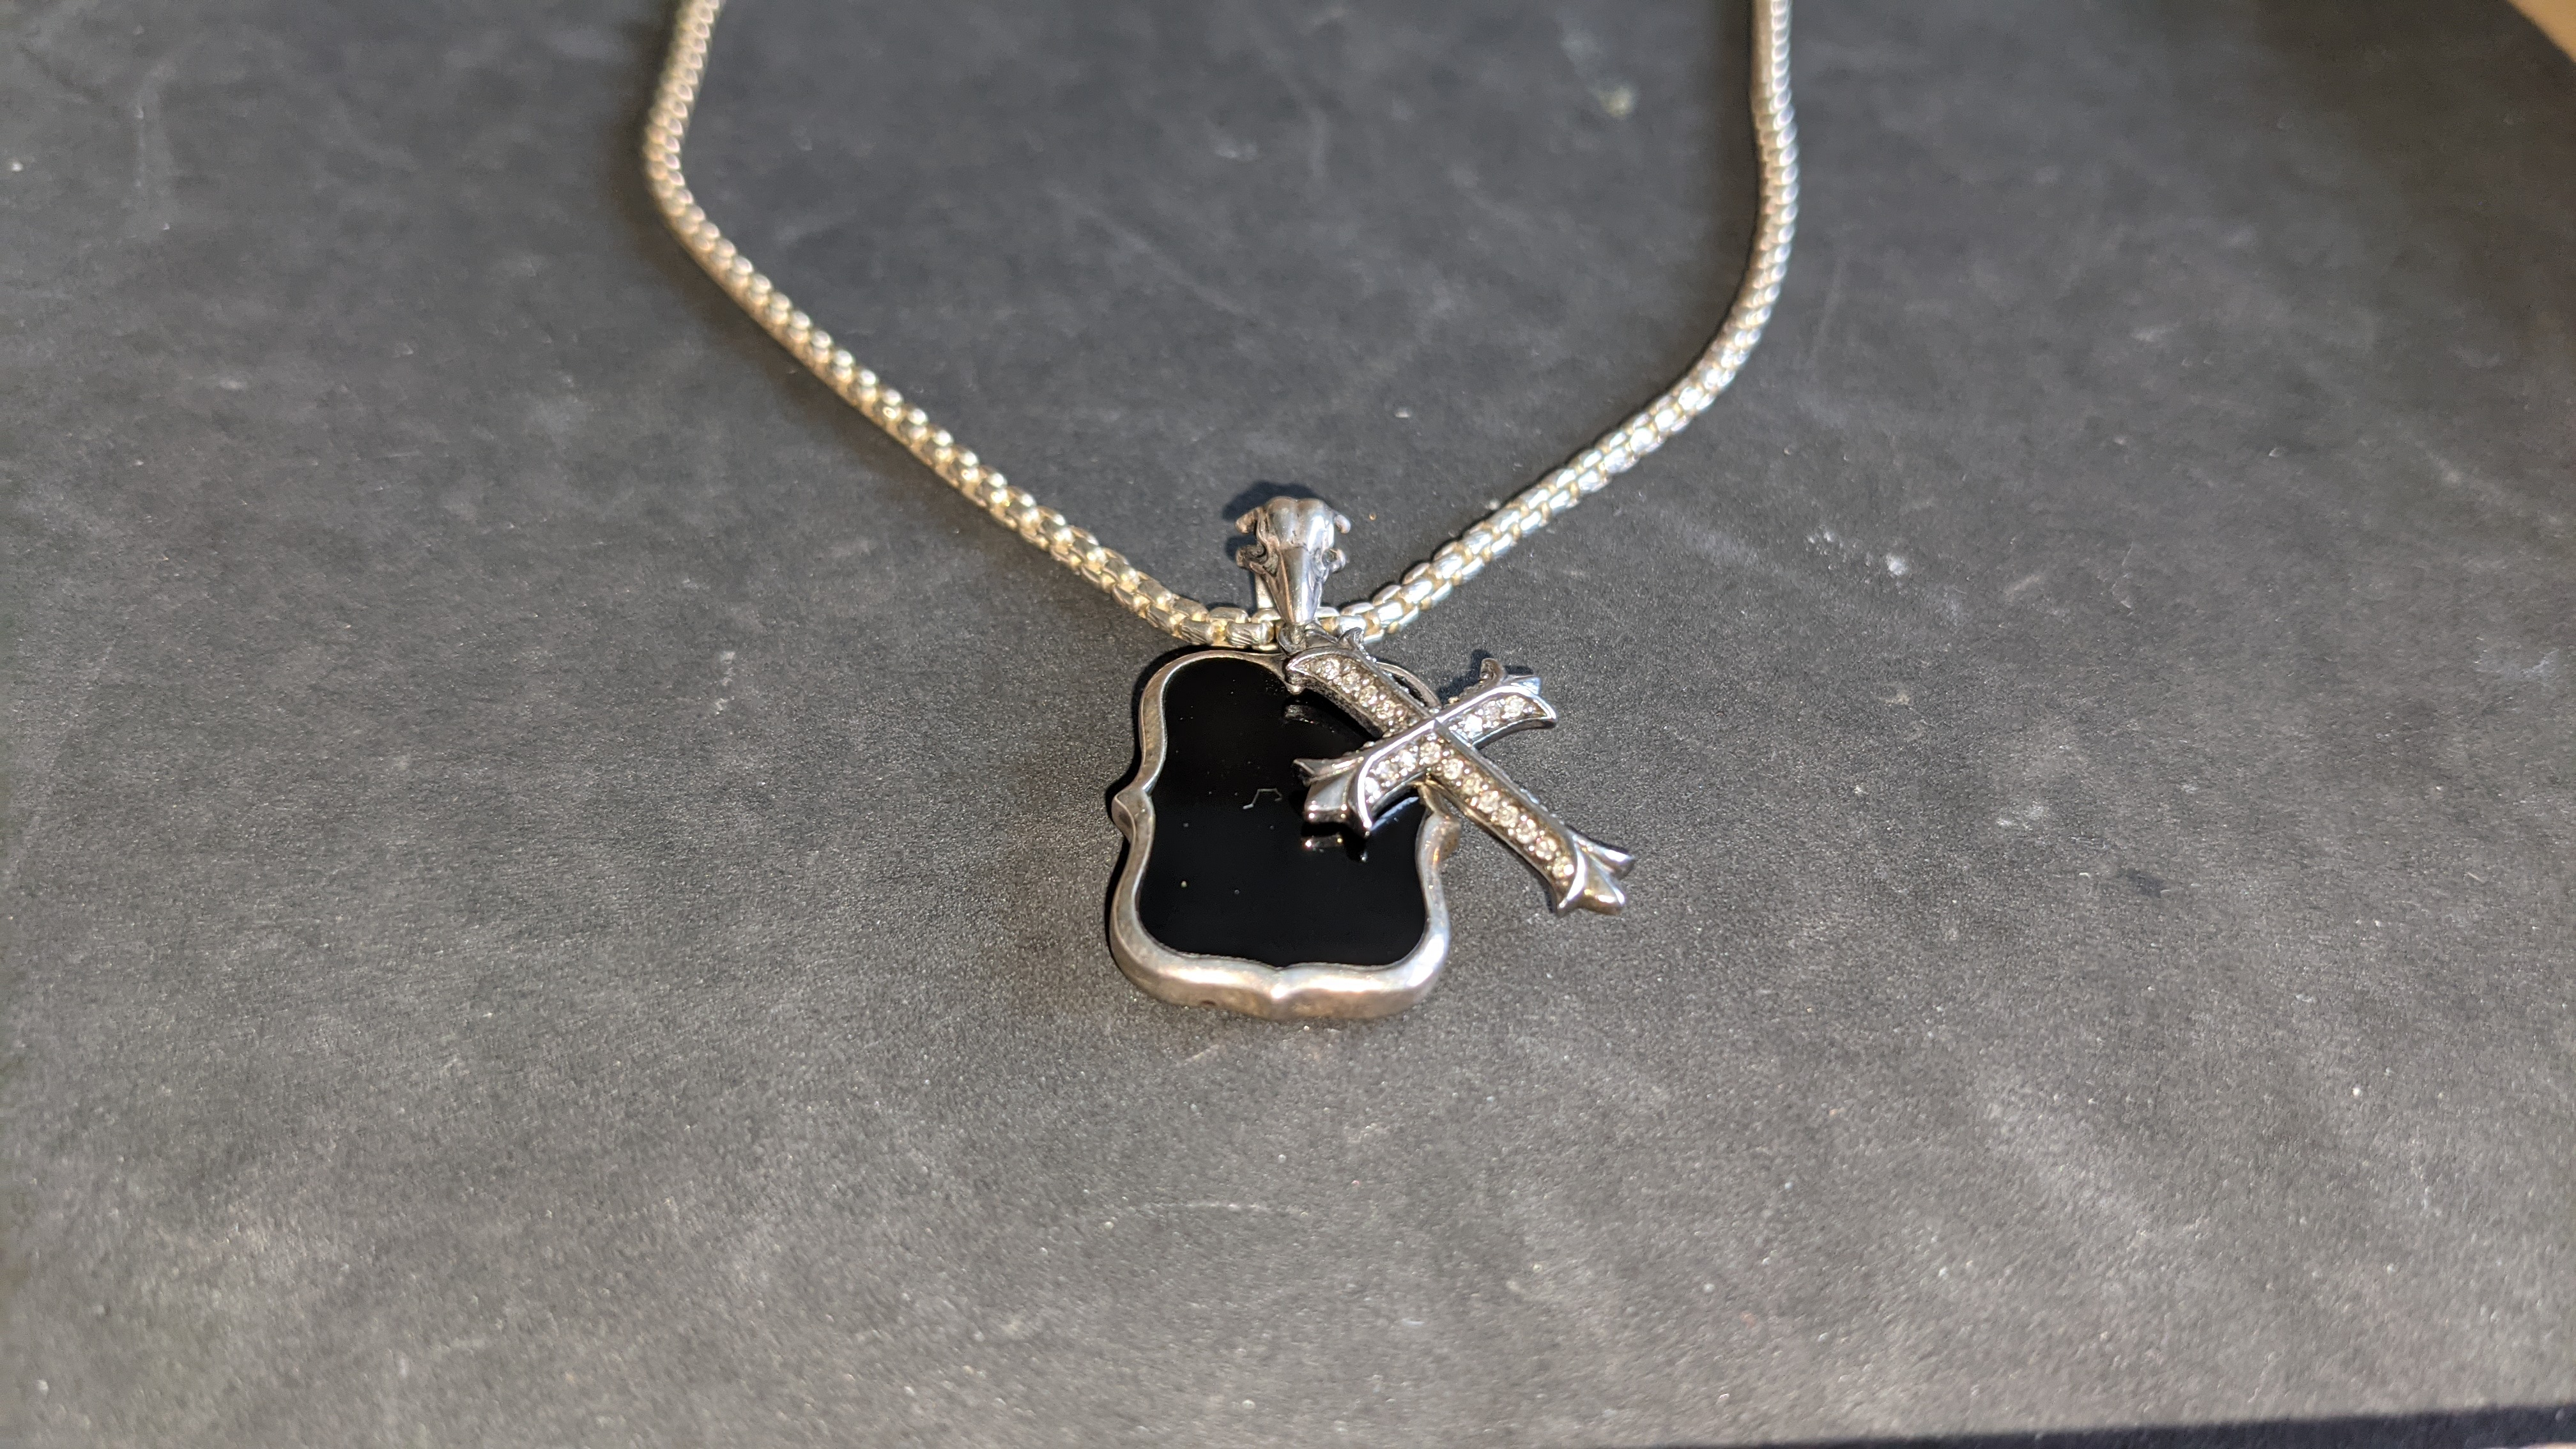 Silver gothic cross pendant on long chain RRP £489 - Image 6 of 12